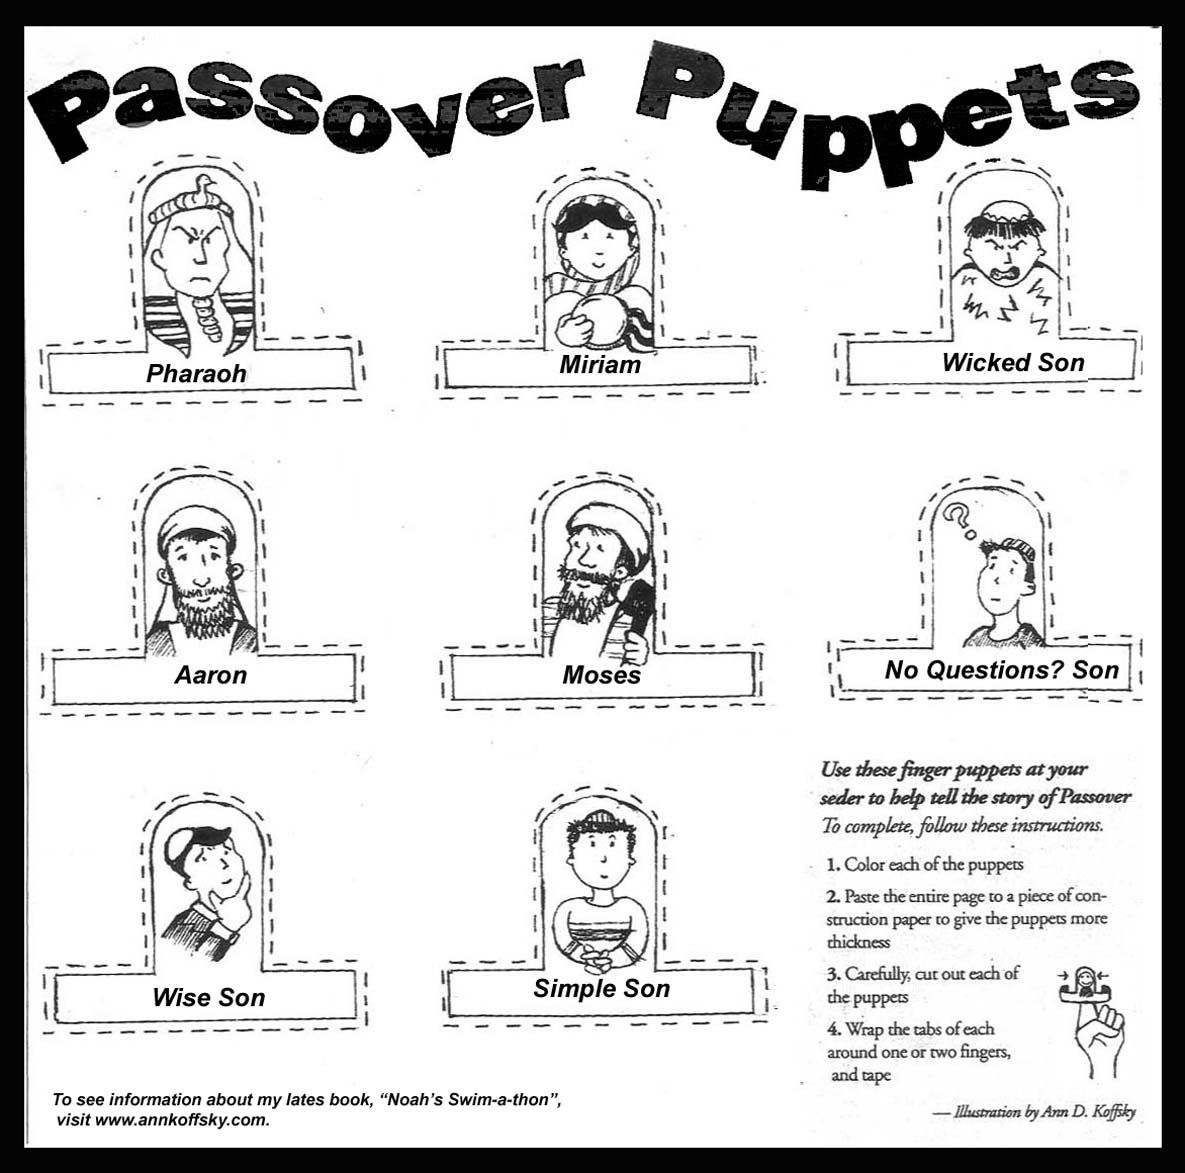 Rare image with regard to children's passover seder printable